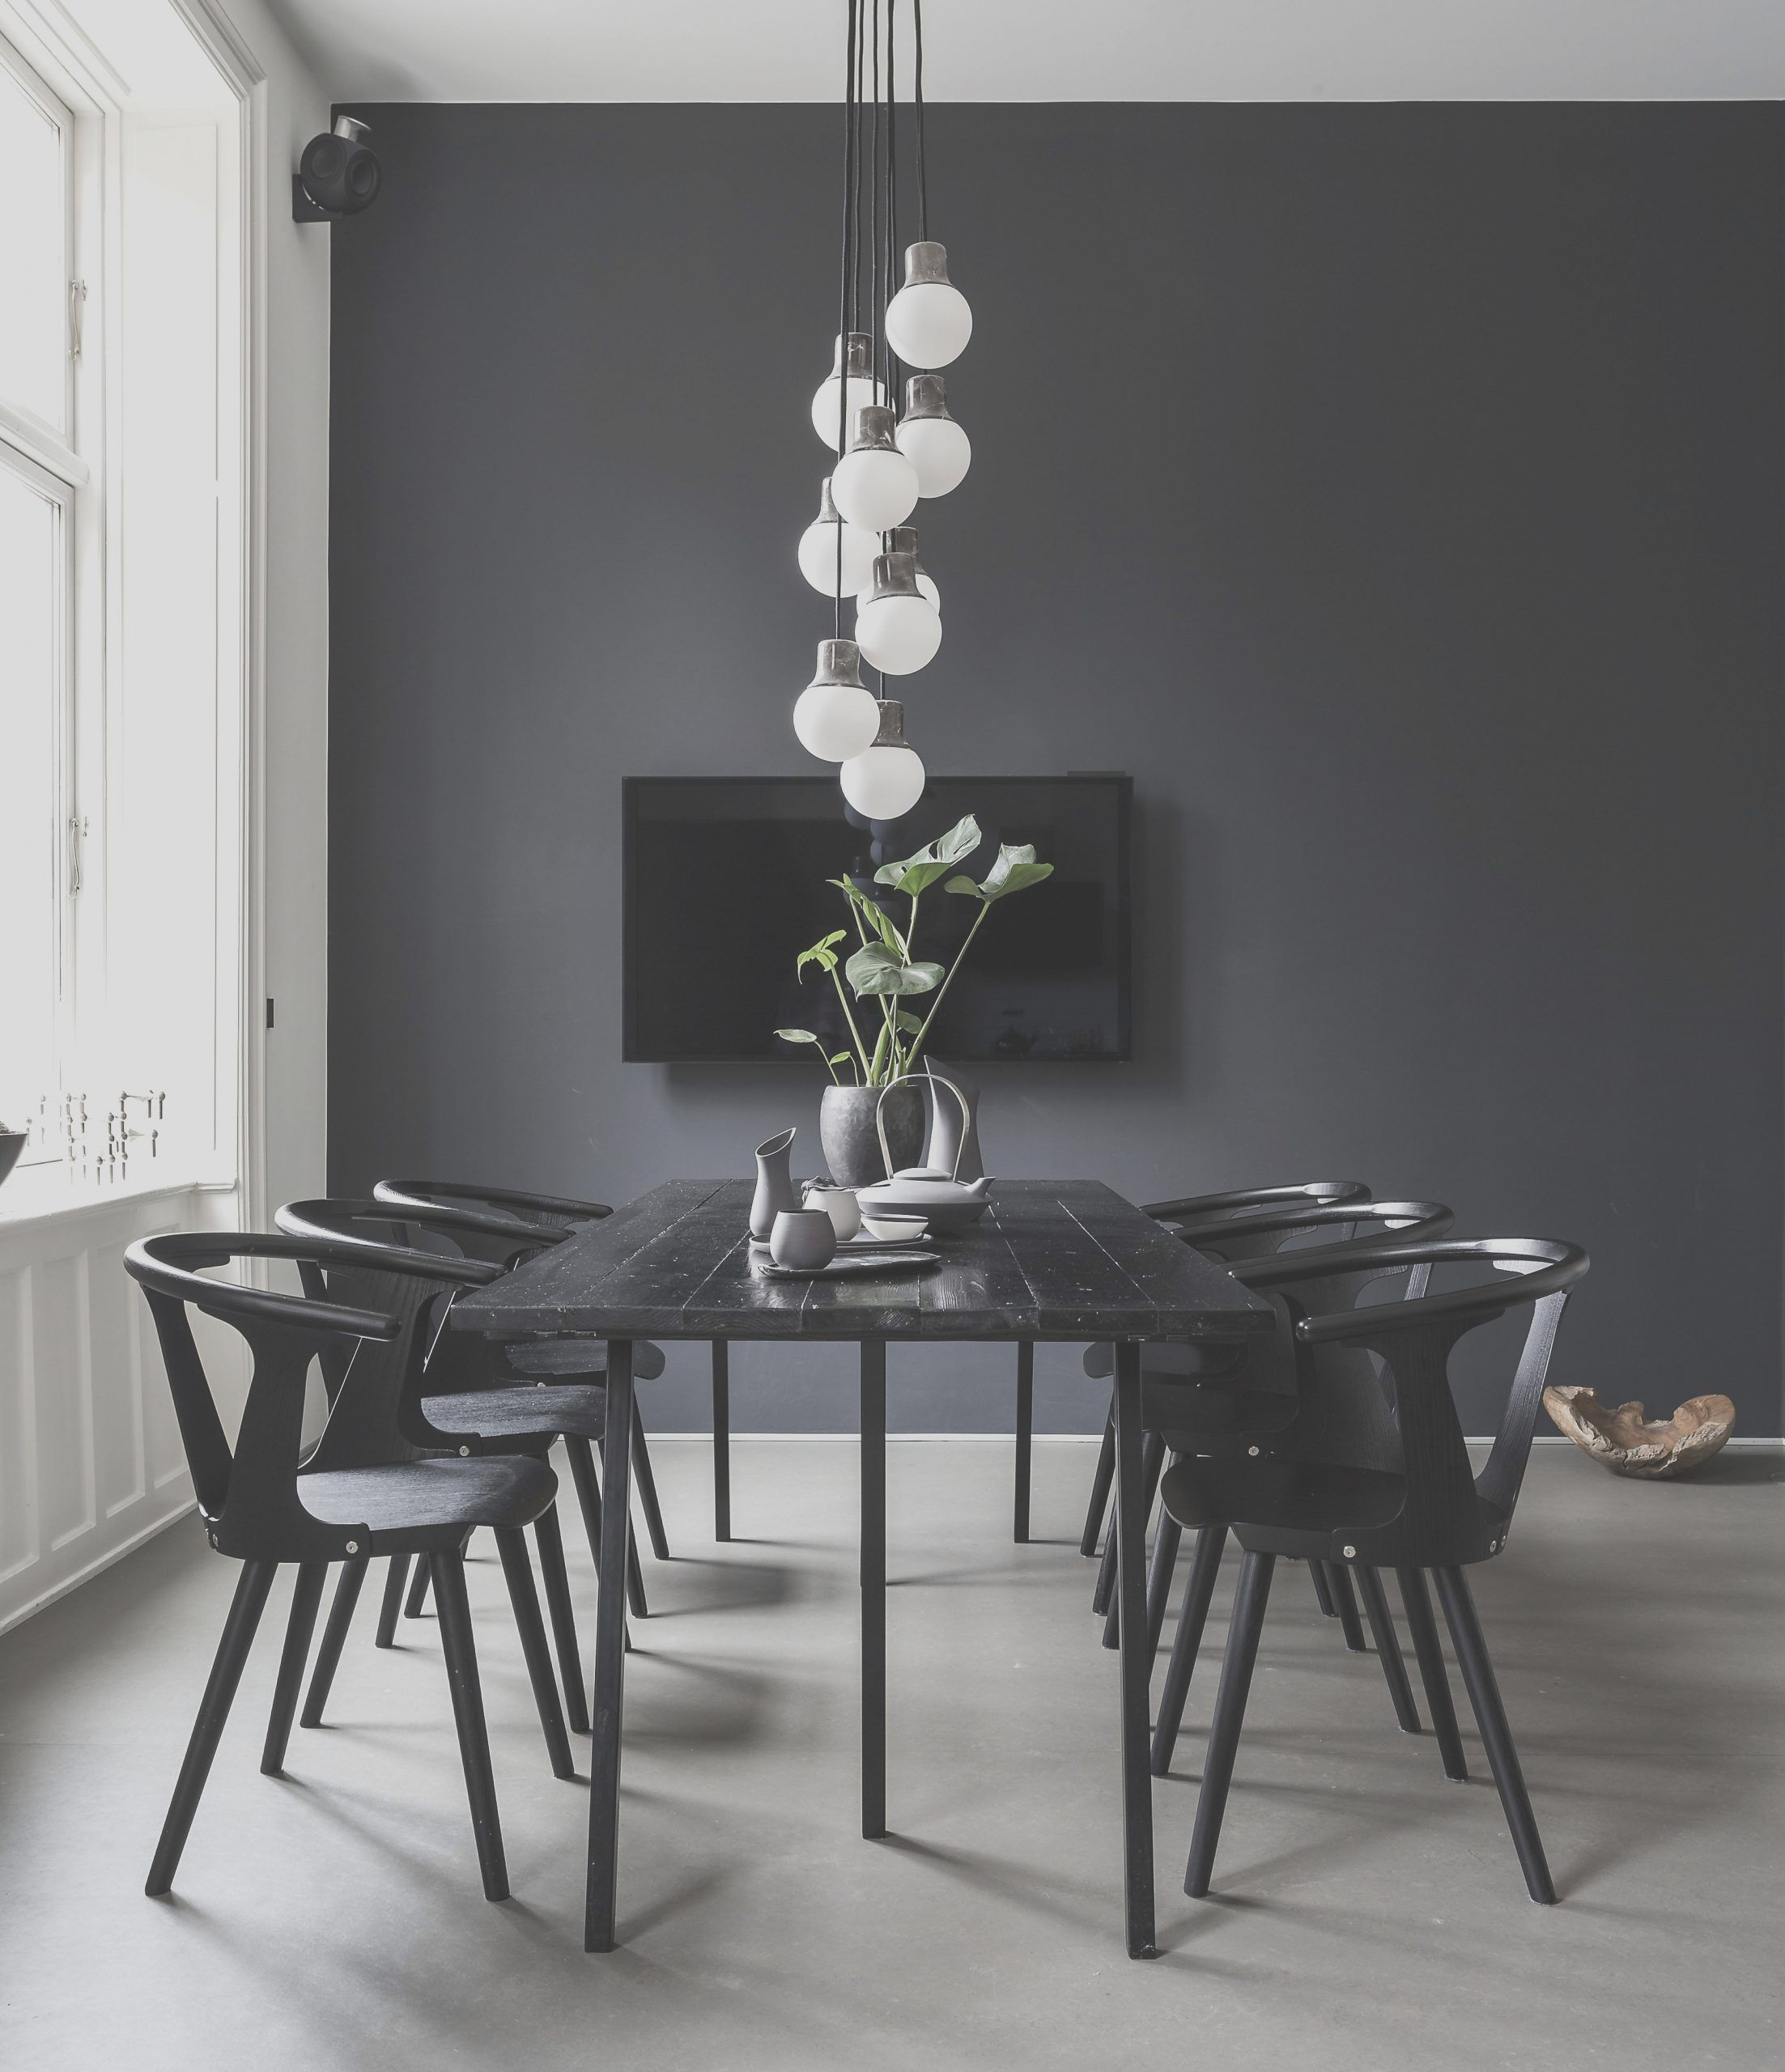 40 Modern Dining Room Design Ideas You Were Looking For In 2021 Minimalist Dining Room Scandinavian Dining Room Mid Century Dining Room Tables